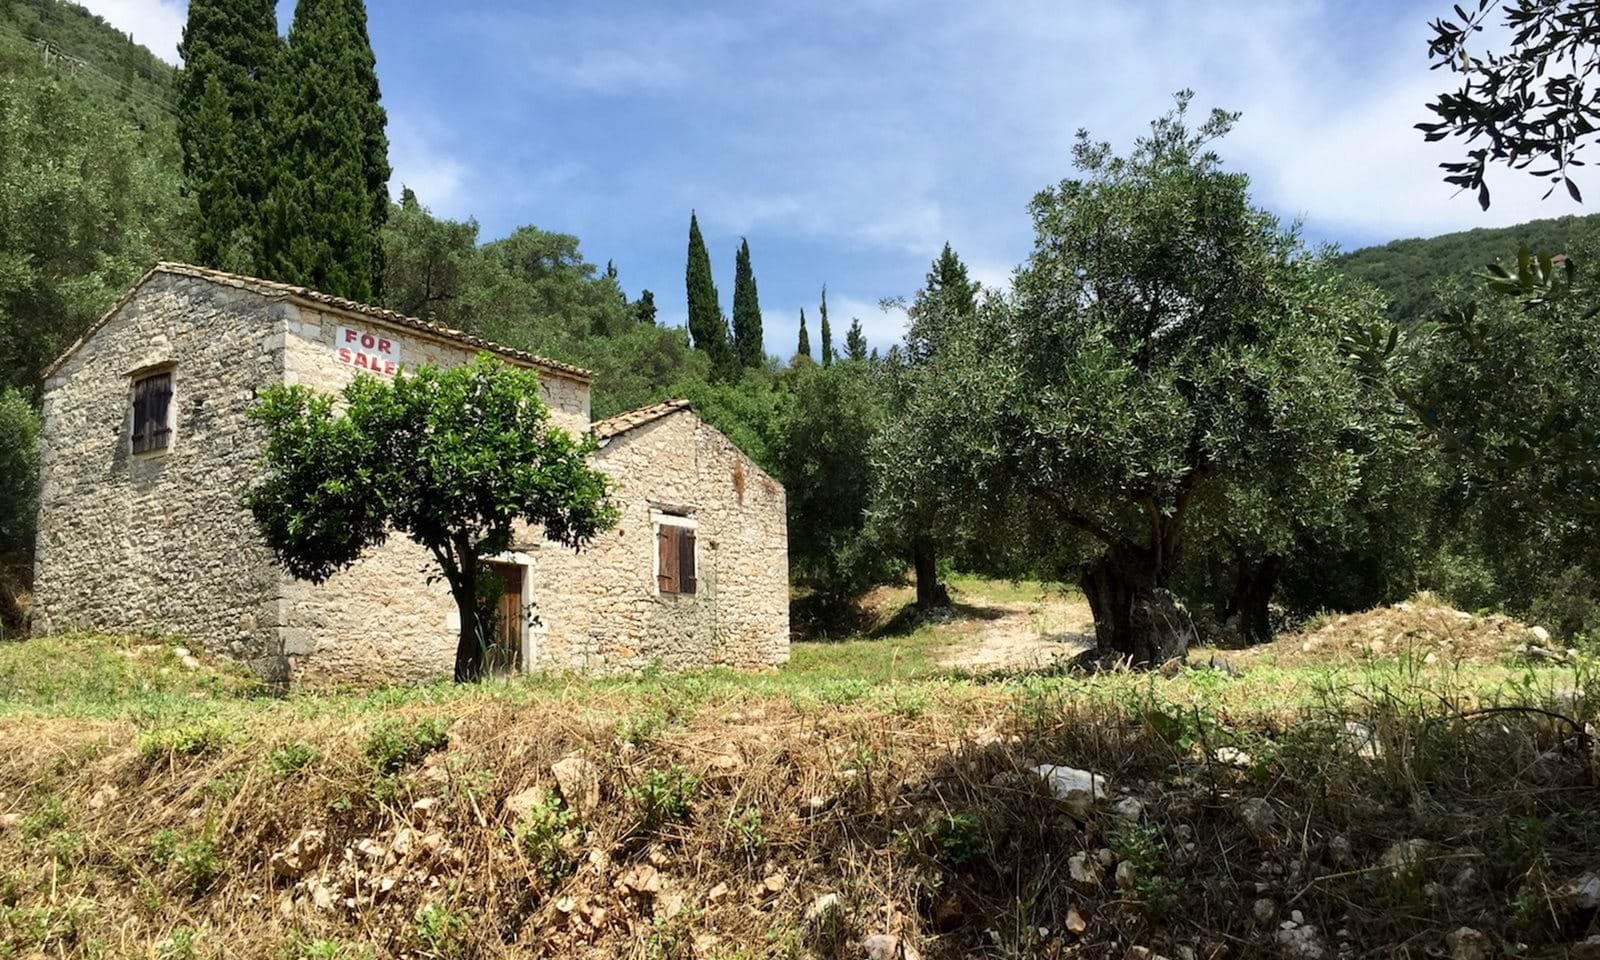 The Olive Press seen from the lower part of the property